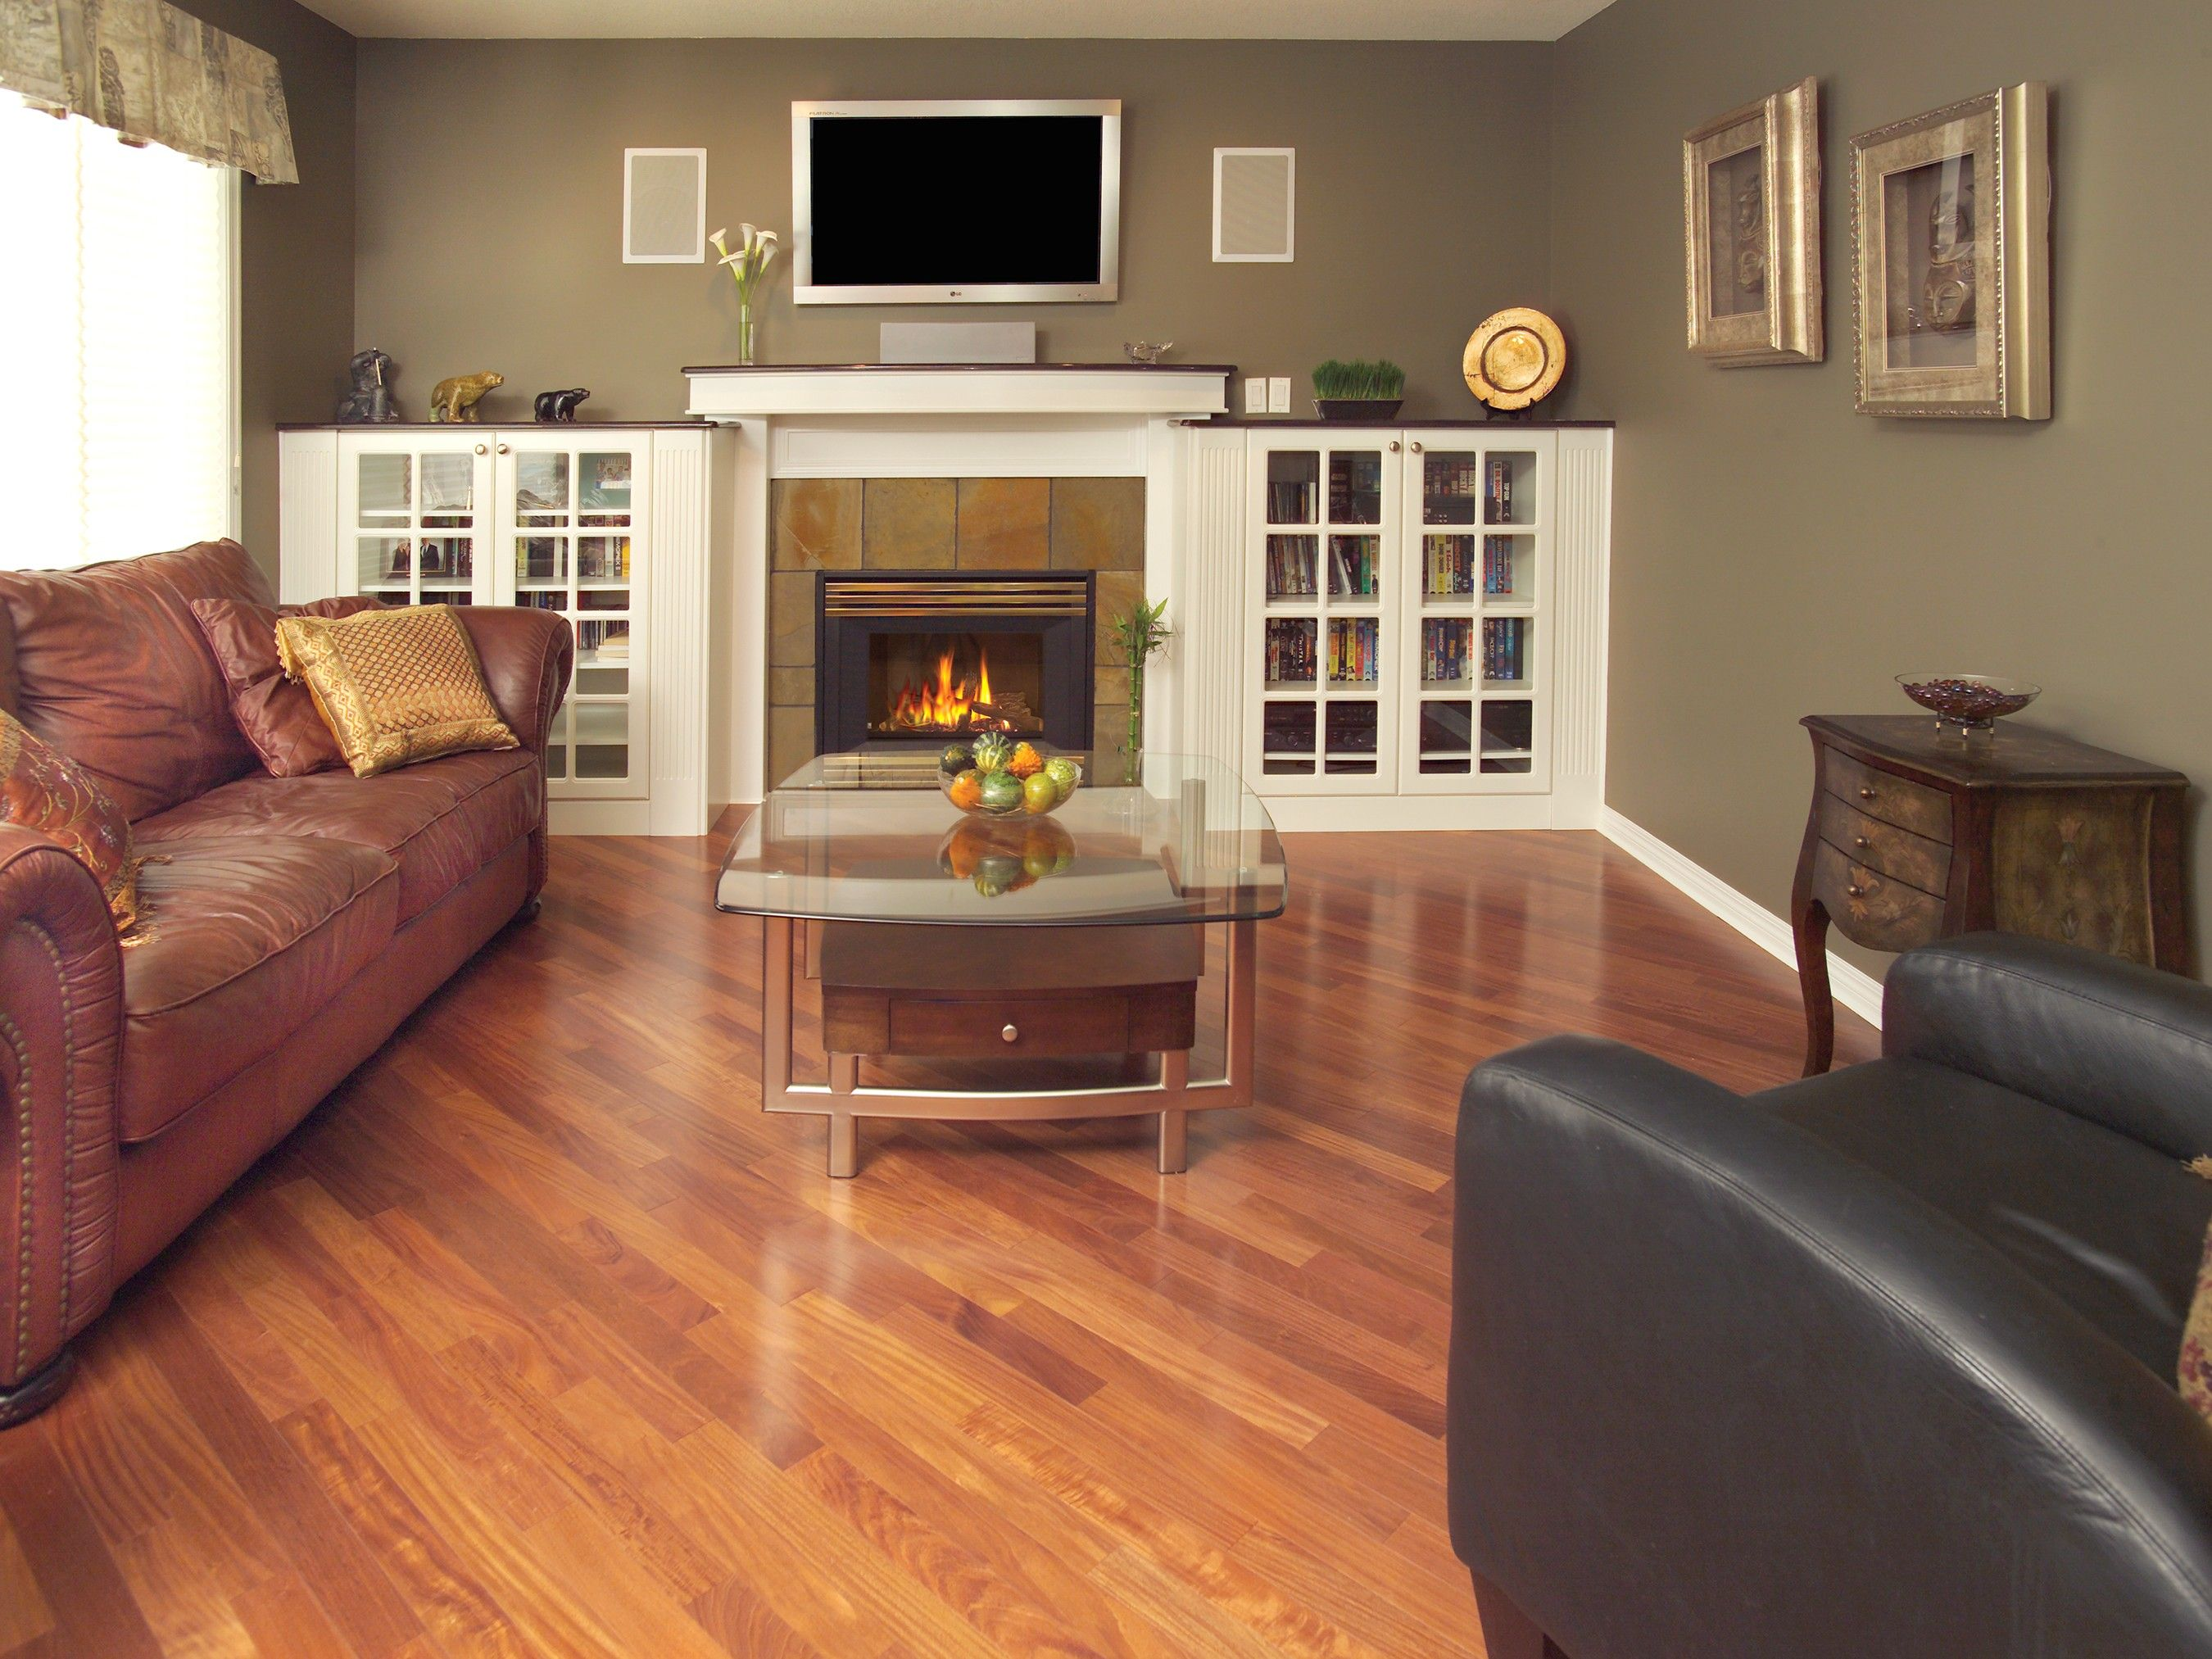 The Upcoming Freedom Blog Mentions The Room Enhancing Effects Of Diagonal  Flooring.